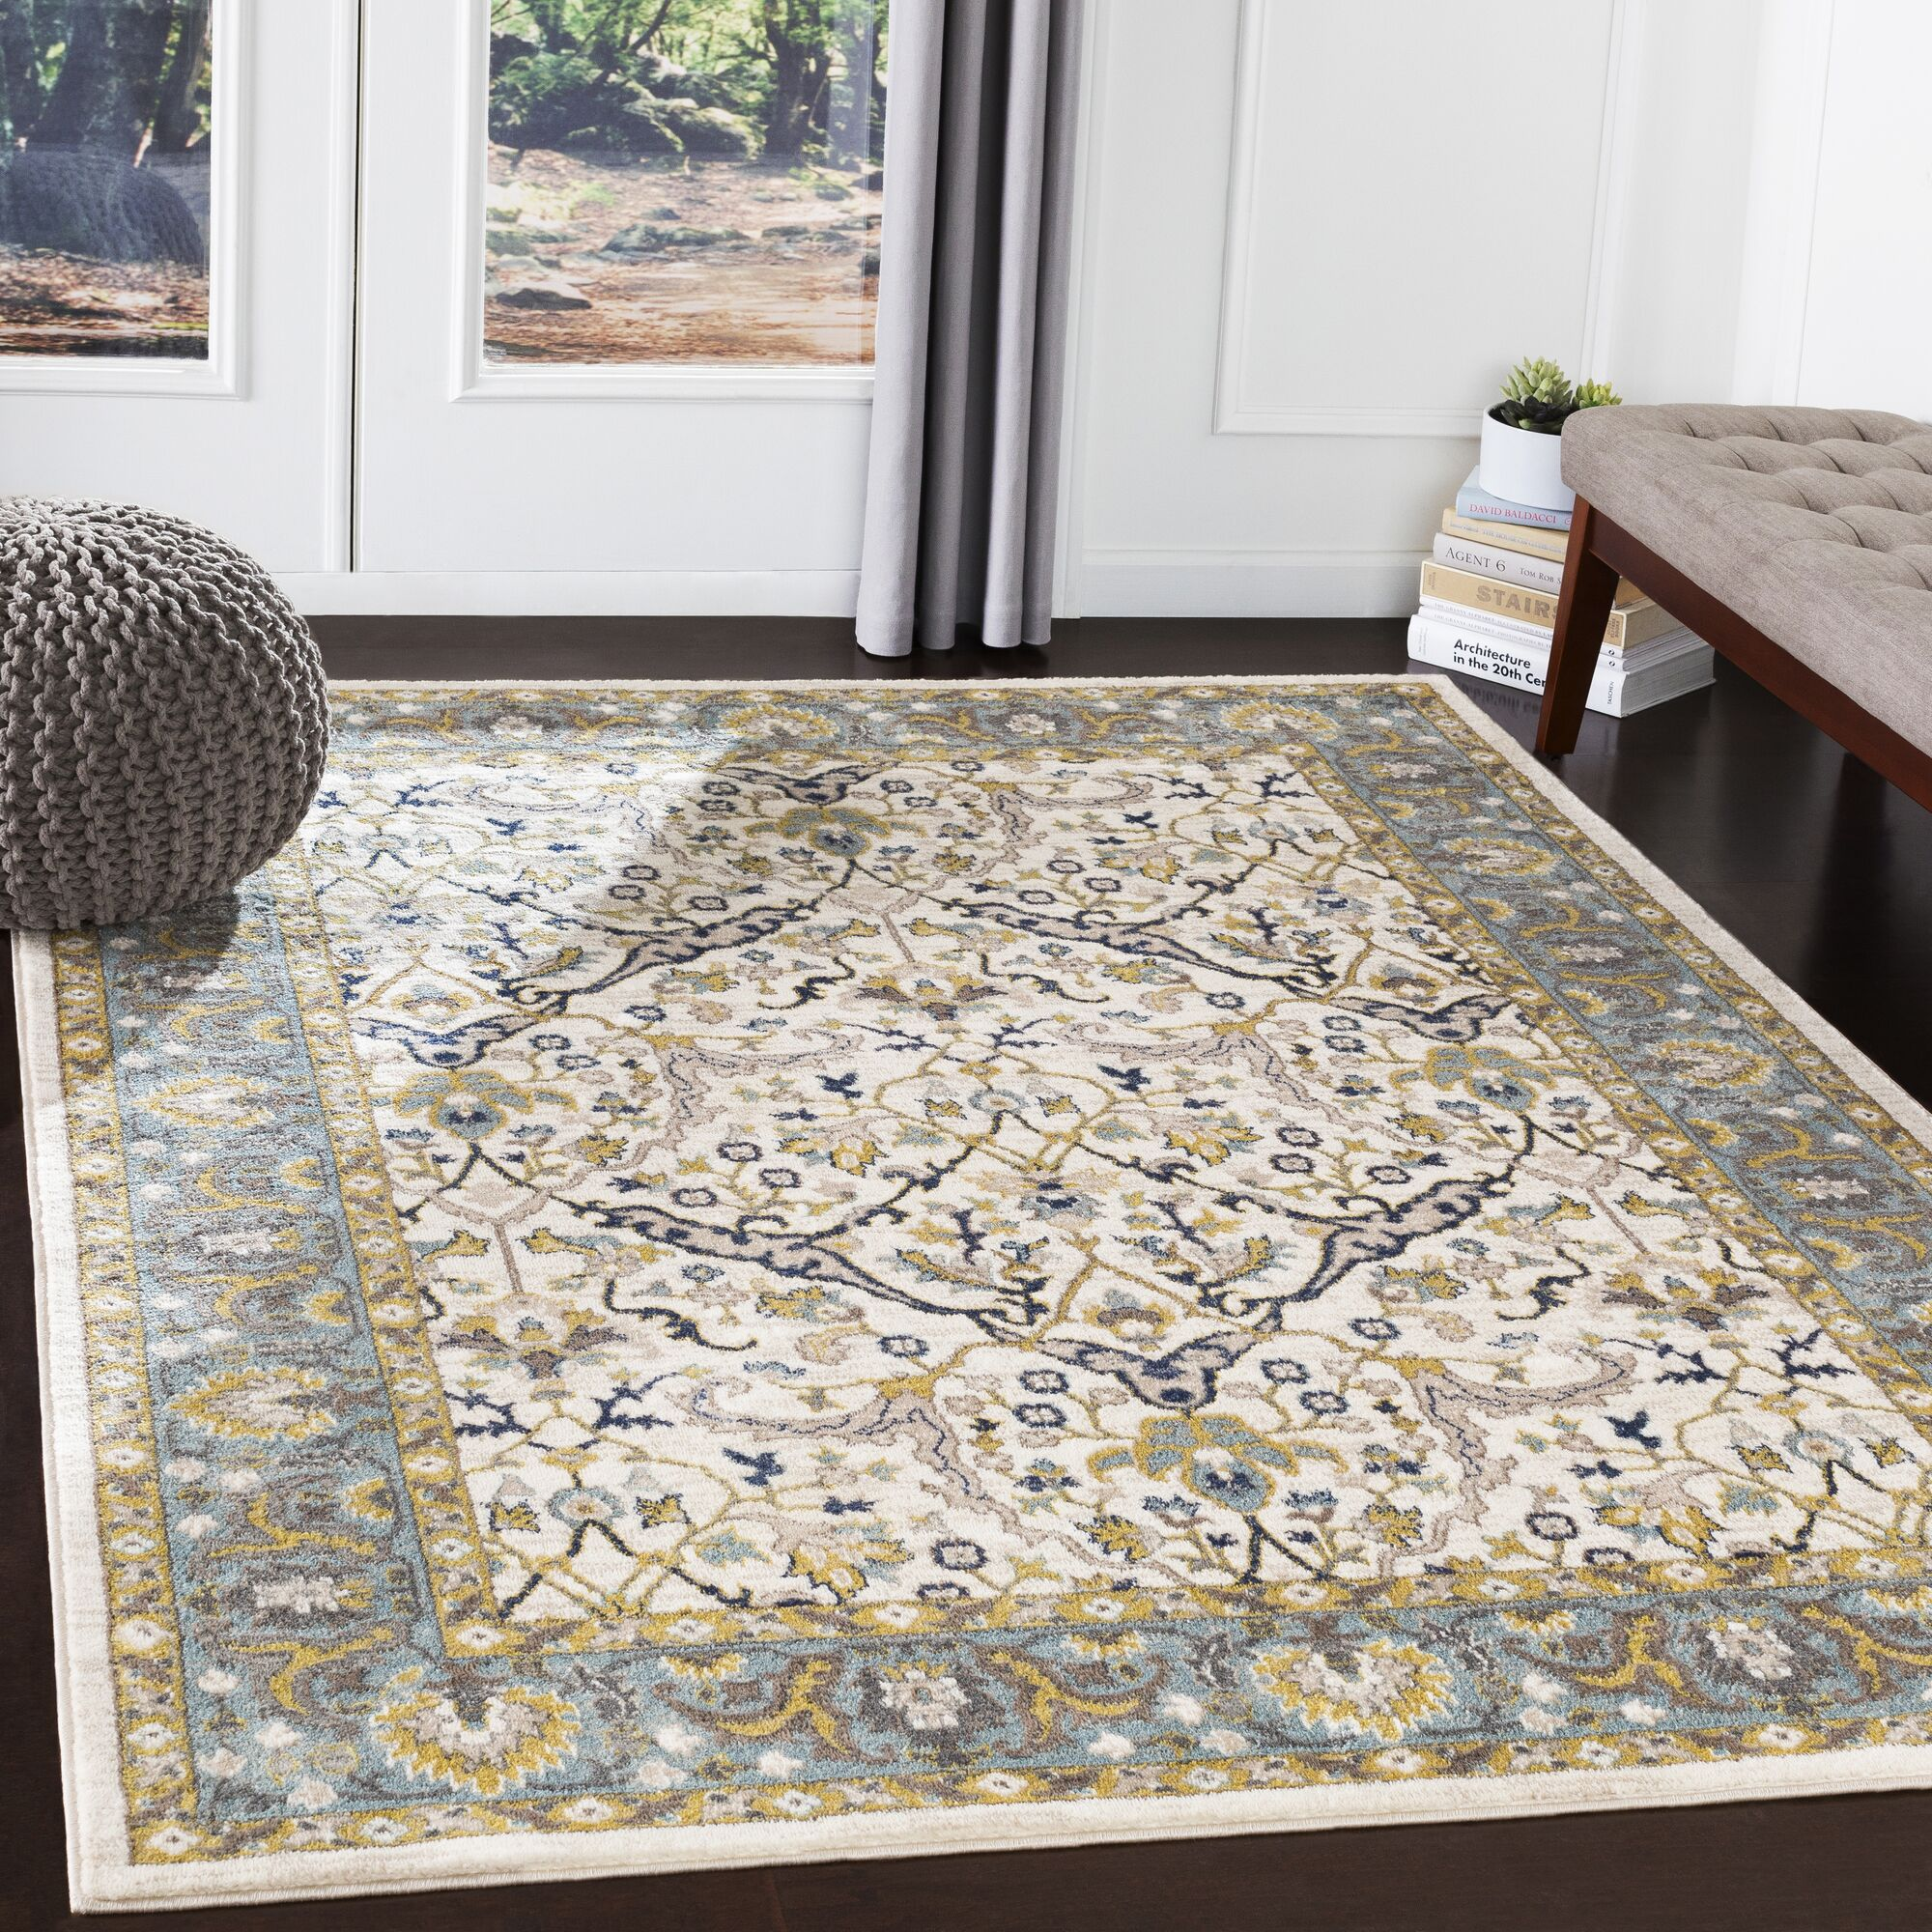 Macclesfield Floral Camel/Navy Area Rug Rug Size: Rectangle 7'10